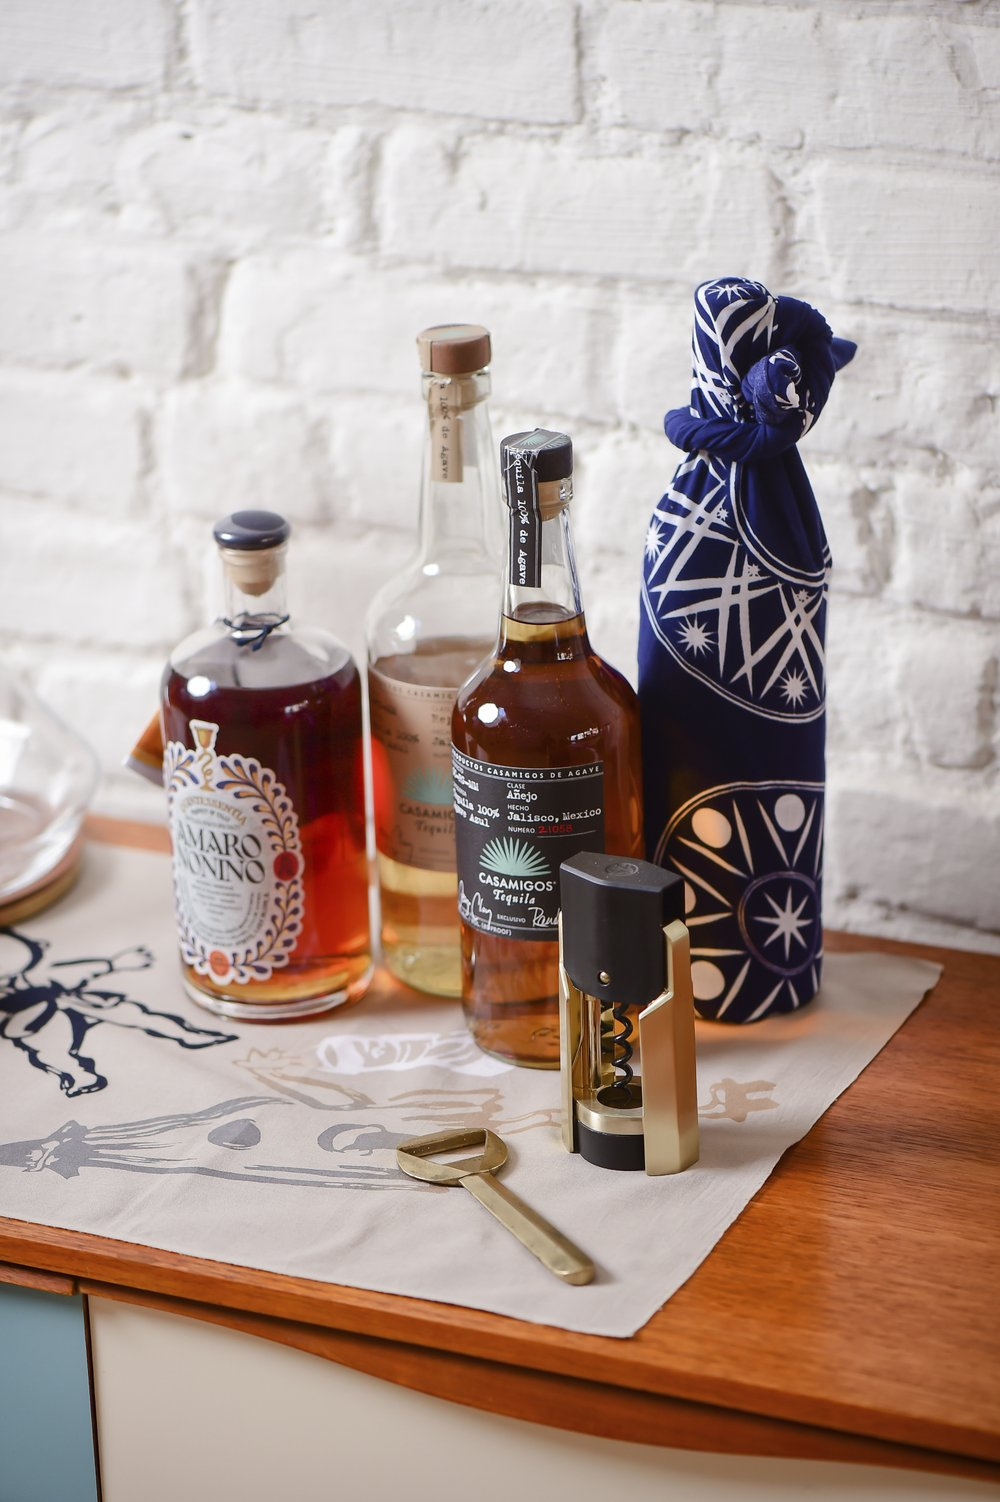 A traditional Tenugui cloth, similar to furoshiki, is used as an alternative to traditional gift wrapping for liquor bottle. Jazzy and sustainable, alternative gift wraps are gaining favor. (Max Flatow via AP/wuhao newyork Inc.)